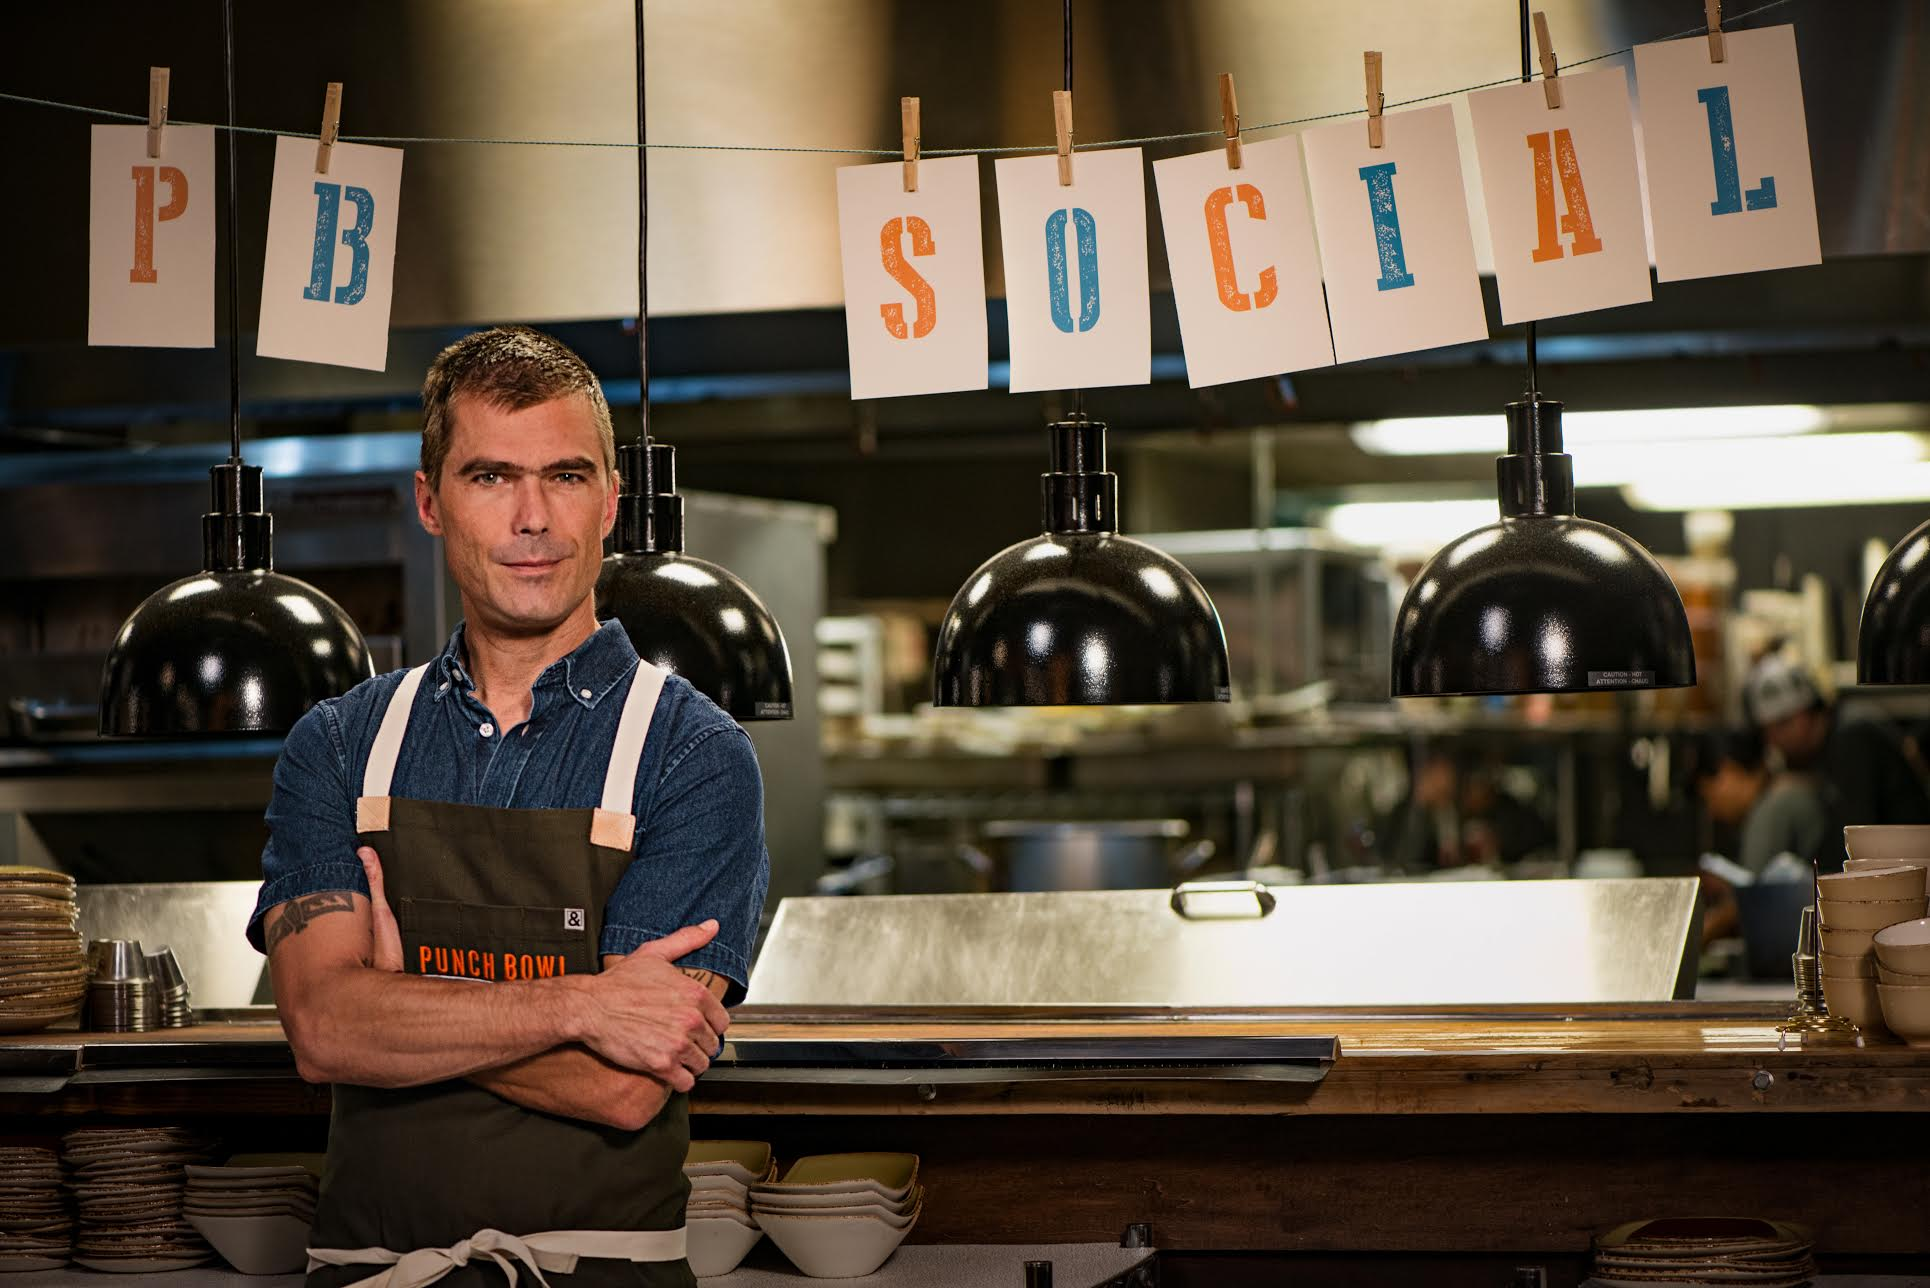 Chef Hugh Acheson. Photo courtesy of Punch Bowl Social.